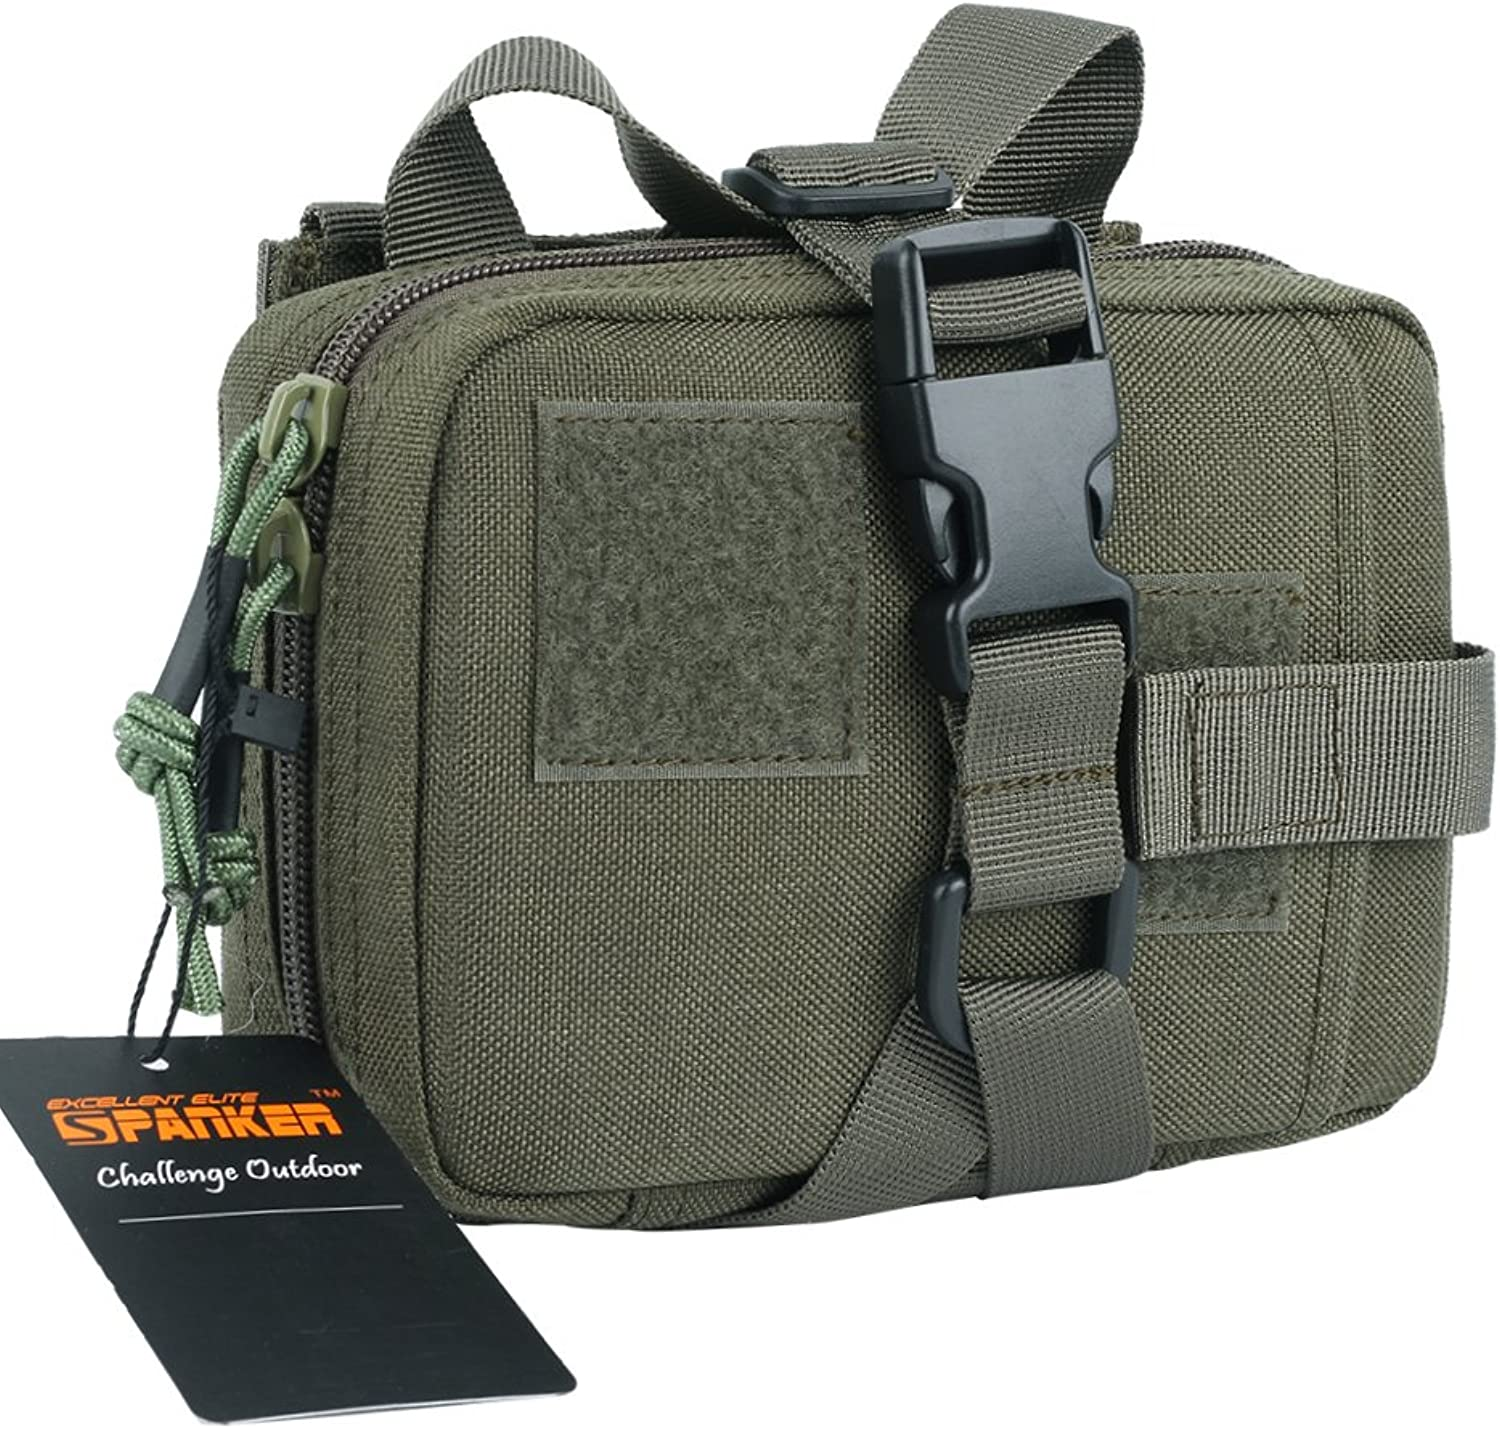 Excellent Elite Spanker Tactical Molle Activity Edition Nylon Emergency Medical Package Outdoor Survival Hiking Emergency Kit